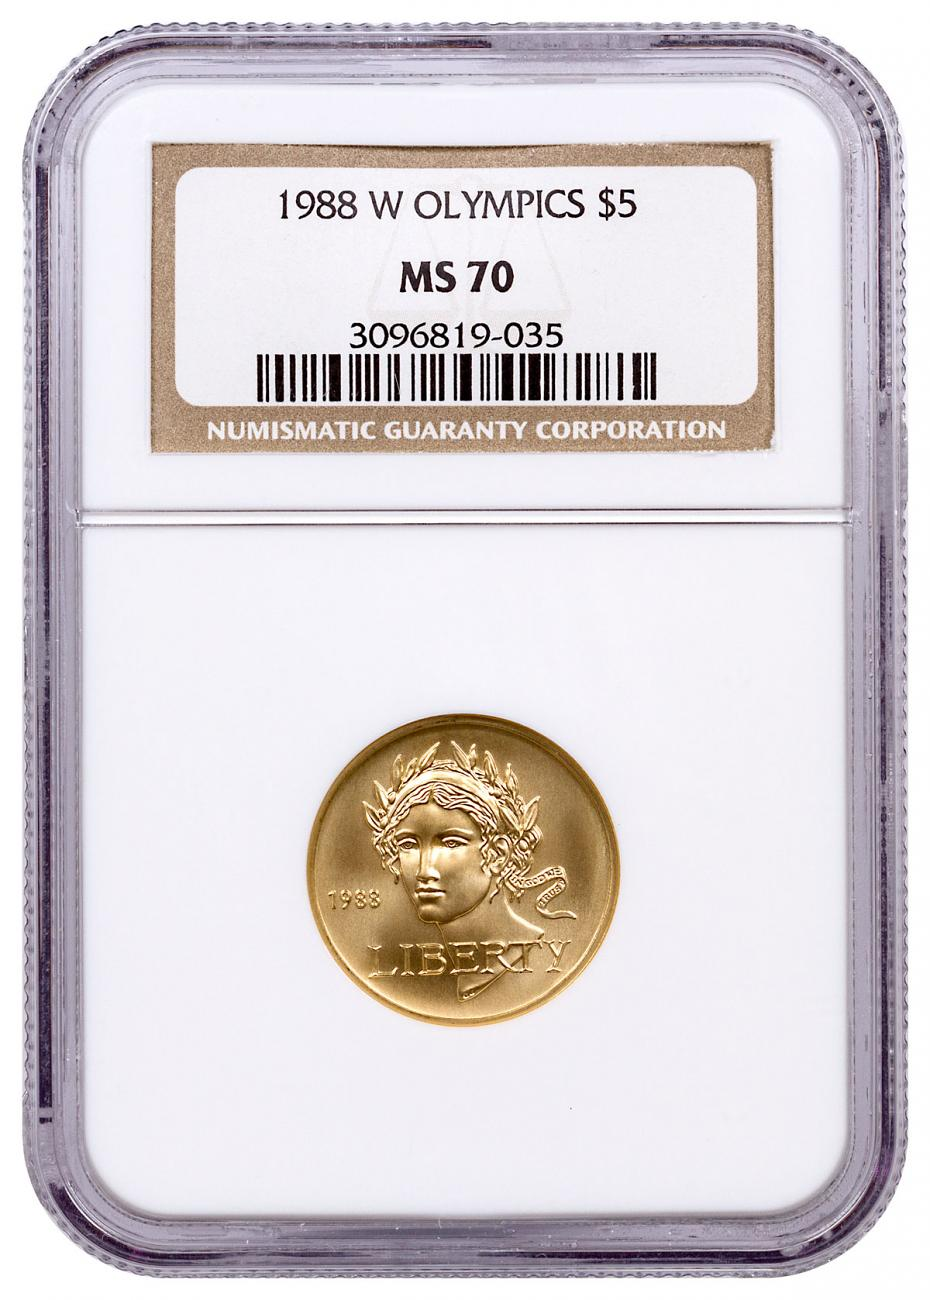 1988-W Olympics $5 Gold Commemorative Coin NGC MS70